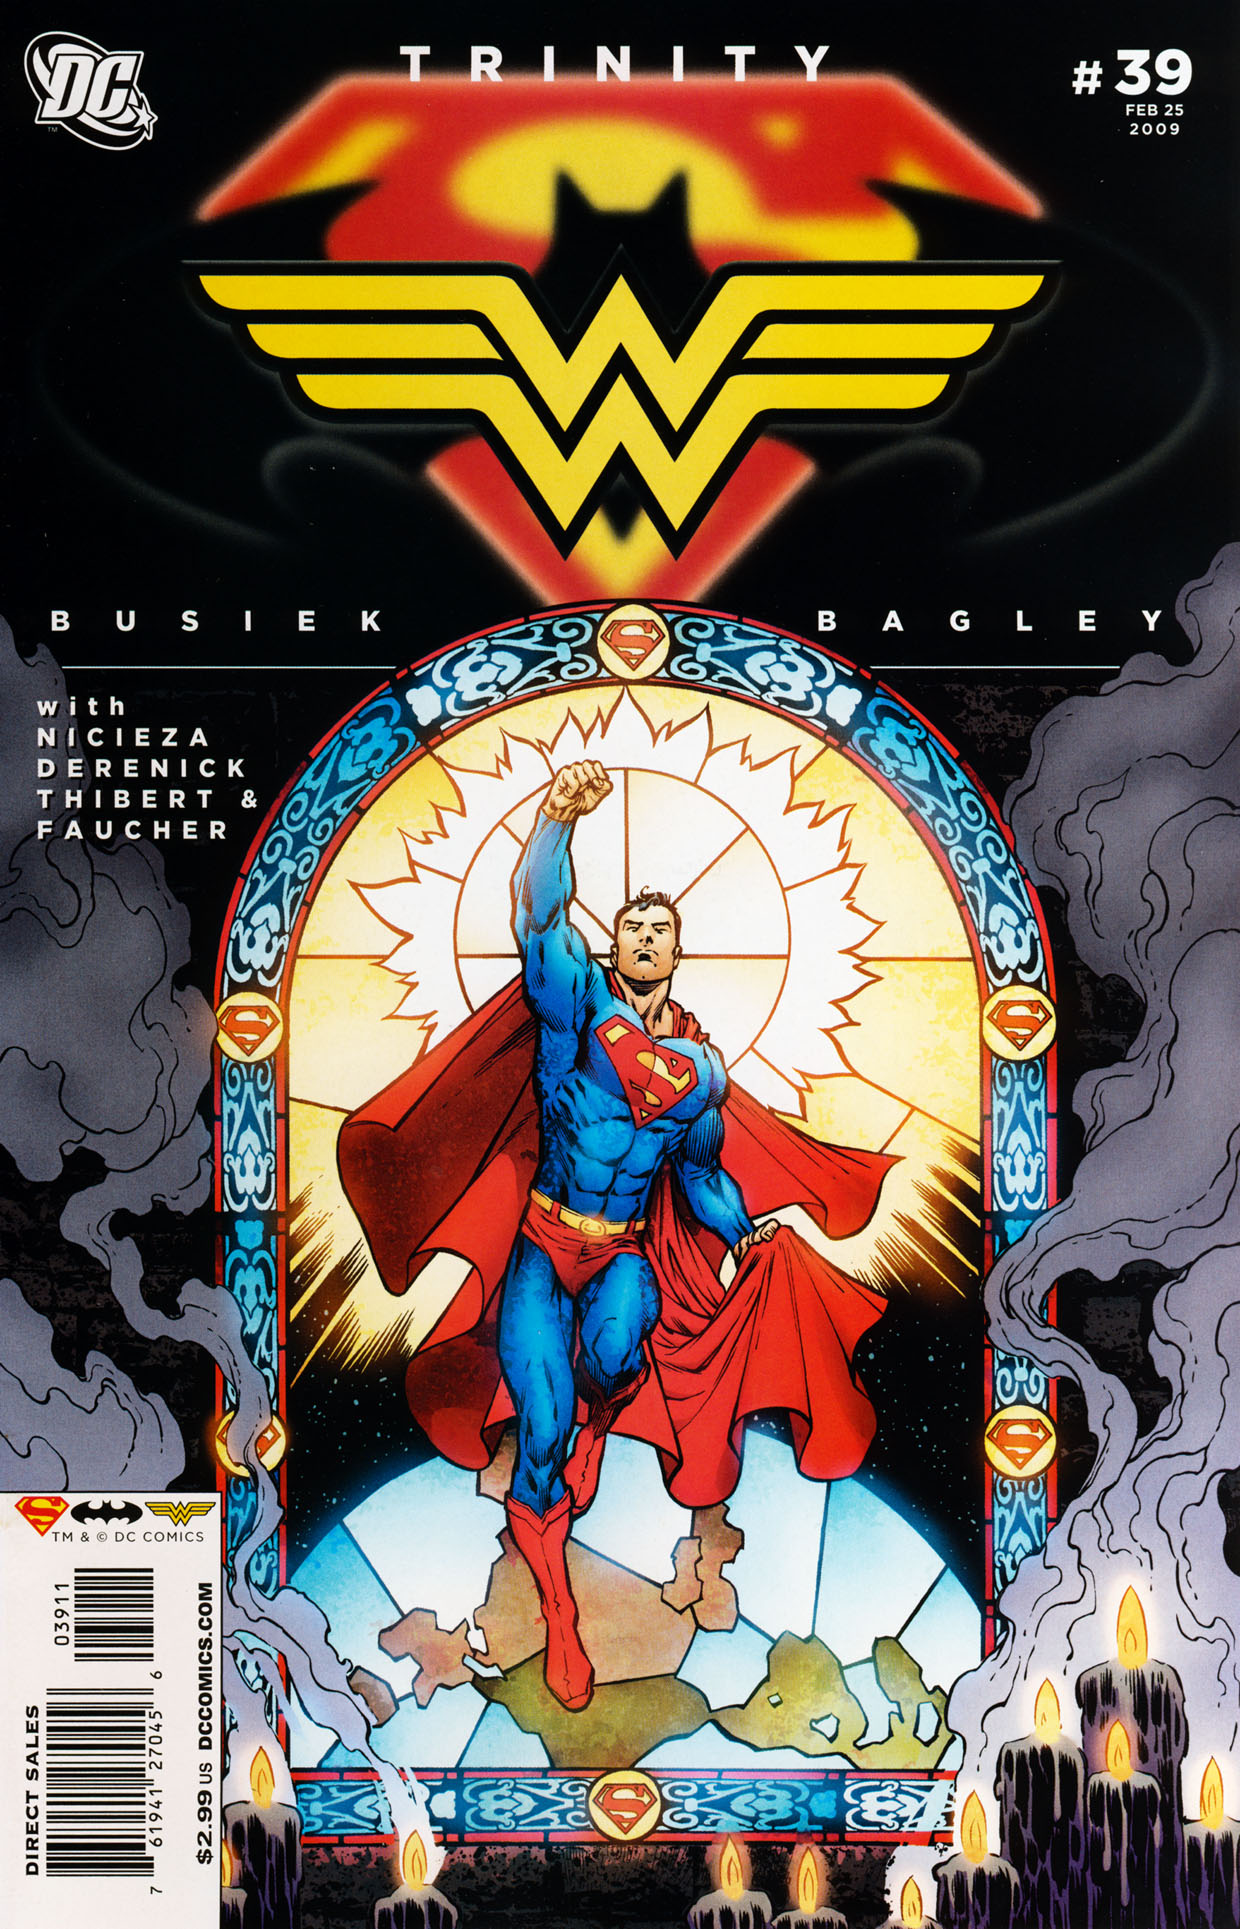 Read online Trinity (2008) comic -  Issue #39 - 1